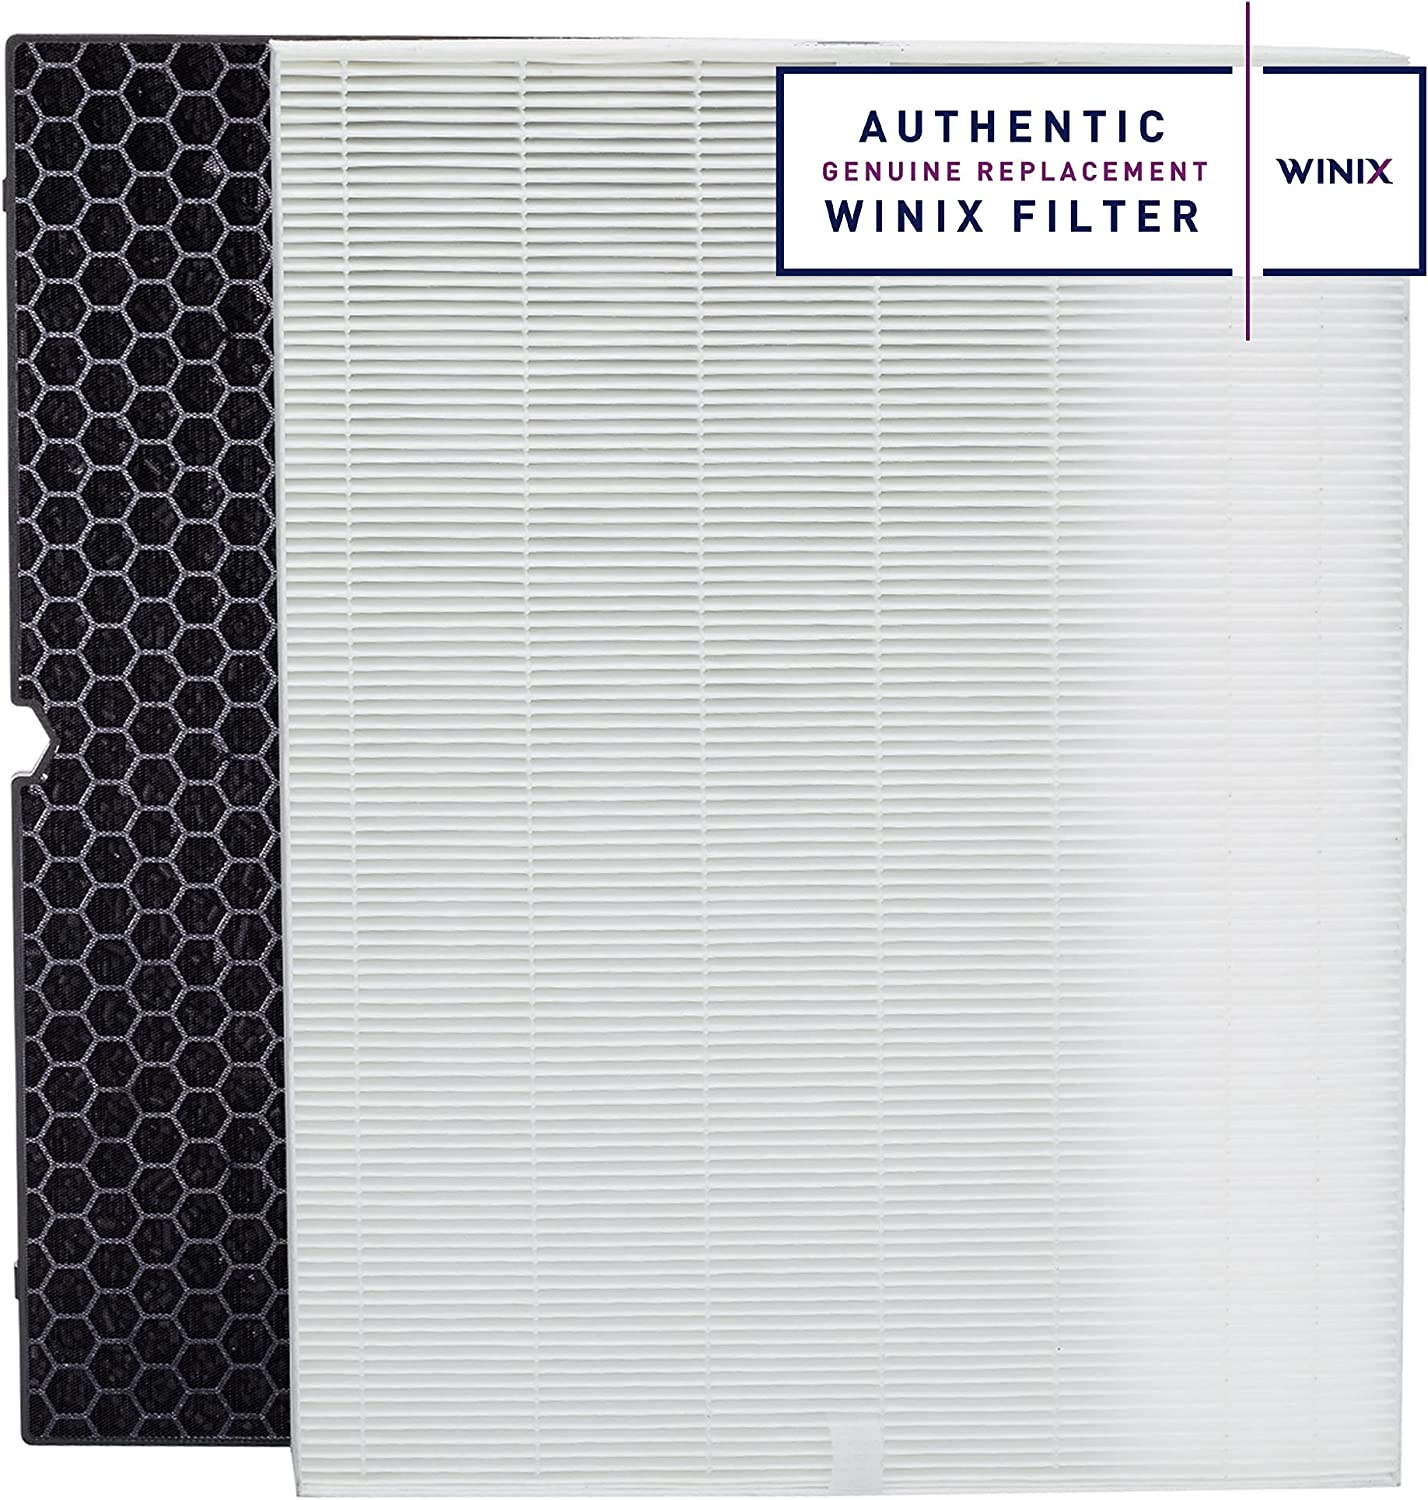 Genuine Winix Replacement Filter for 5500-2 Air Purifiers $39  Coupon